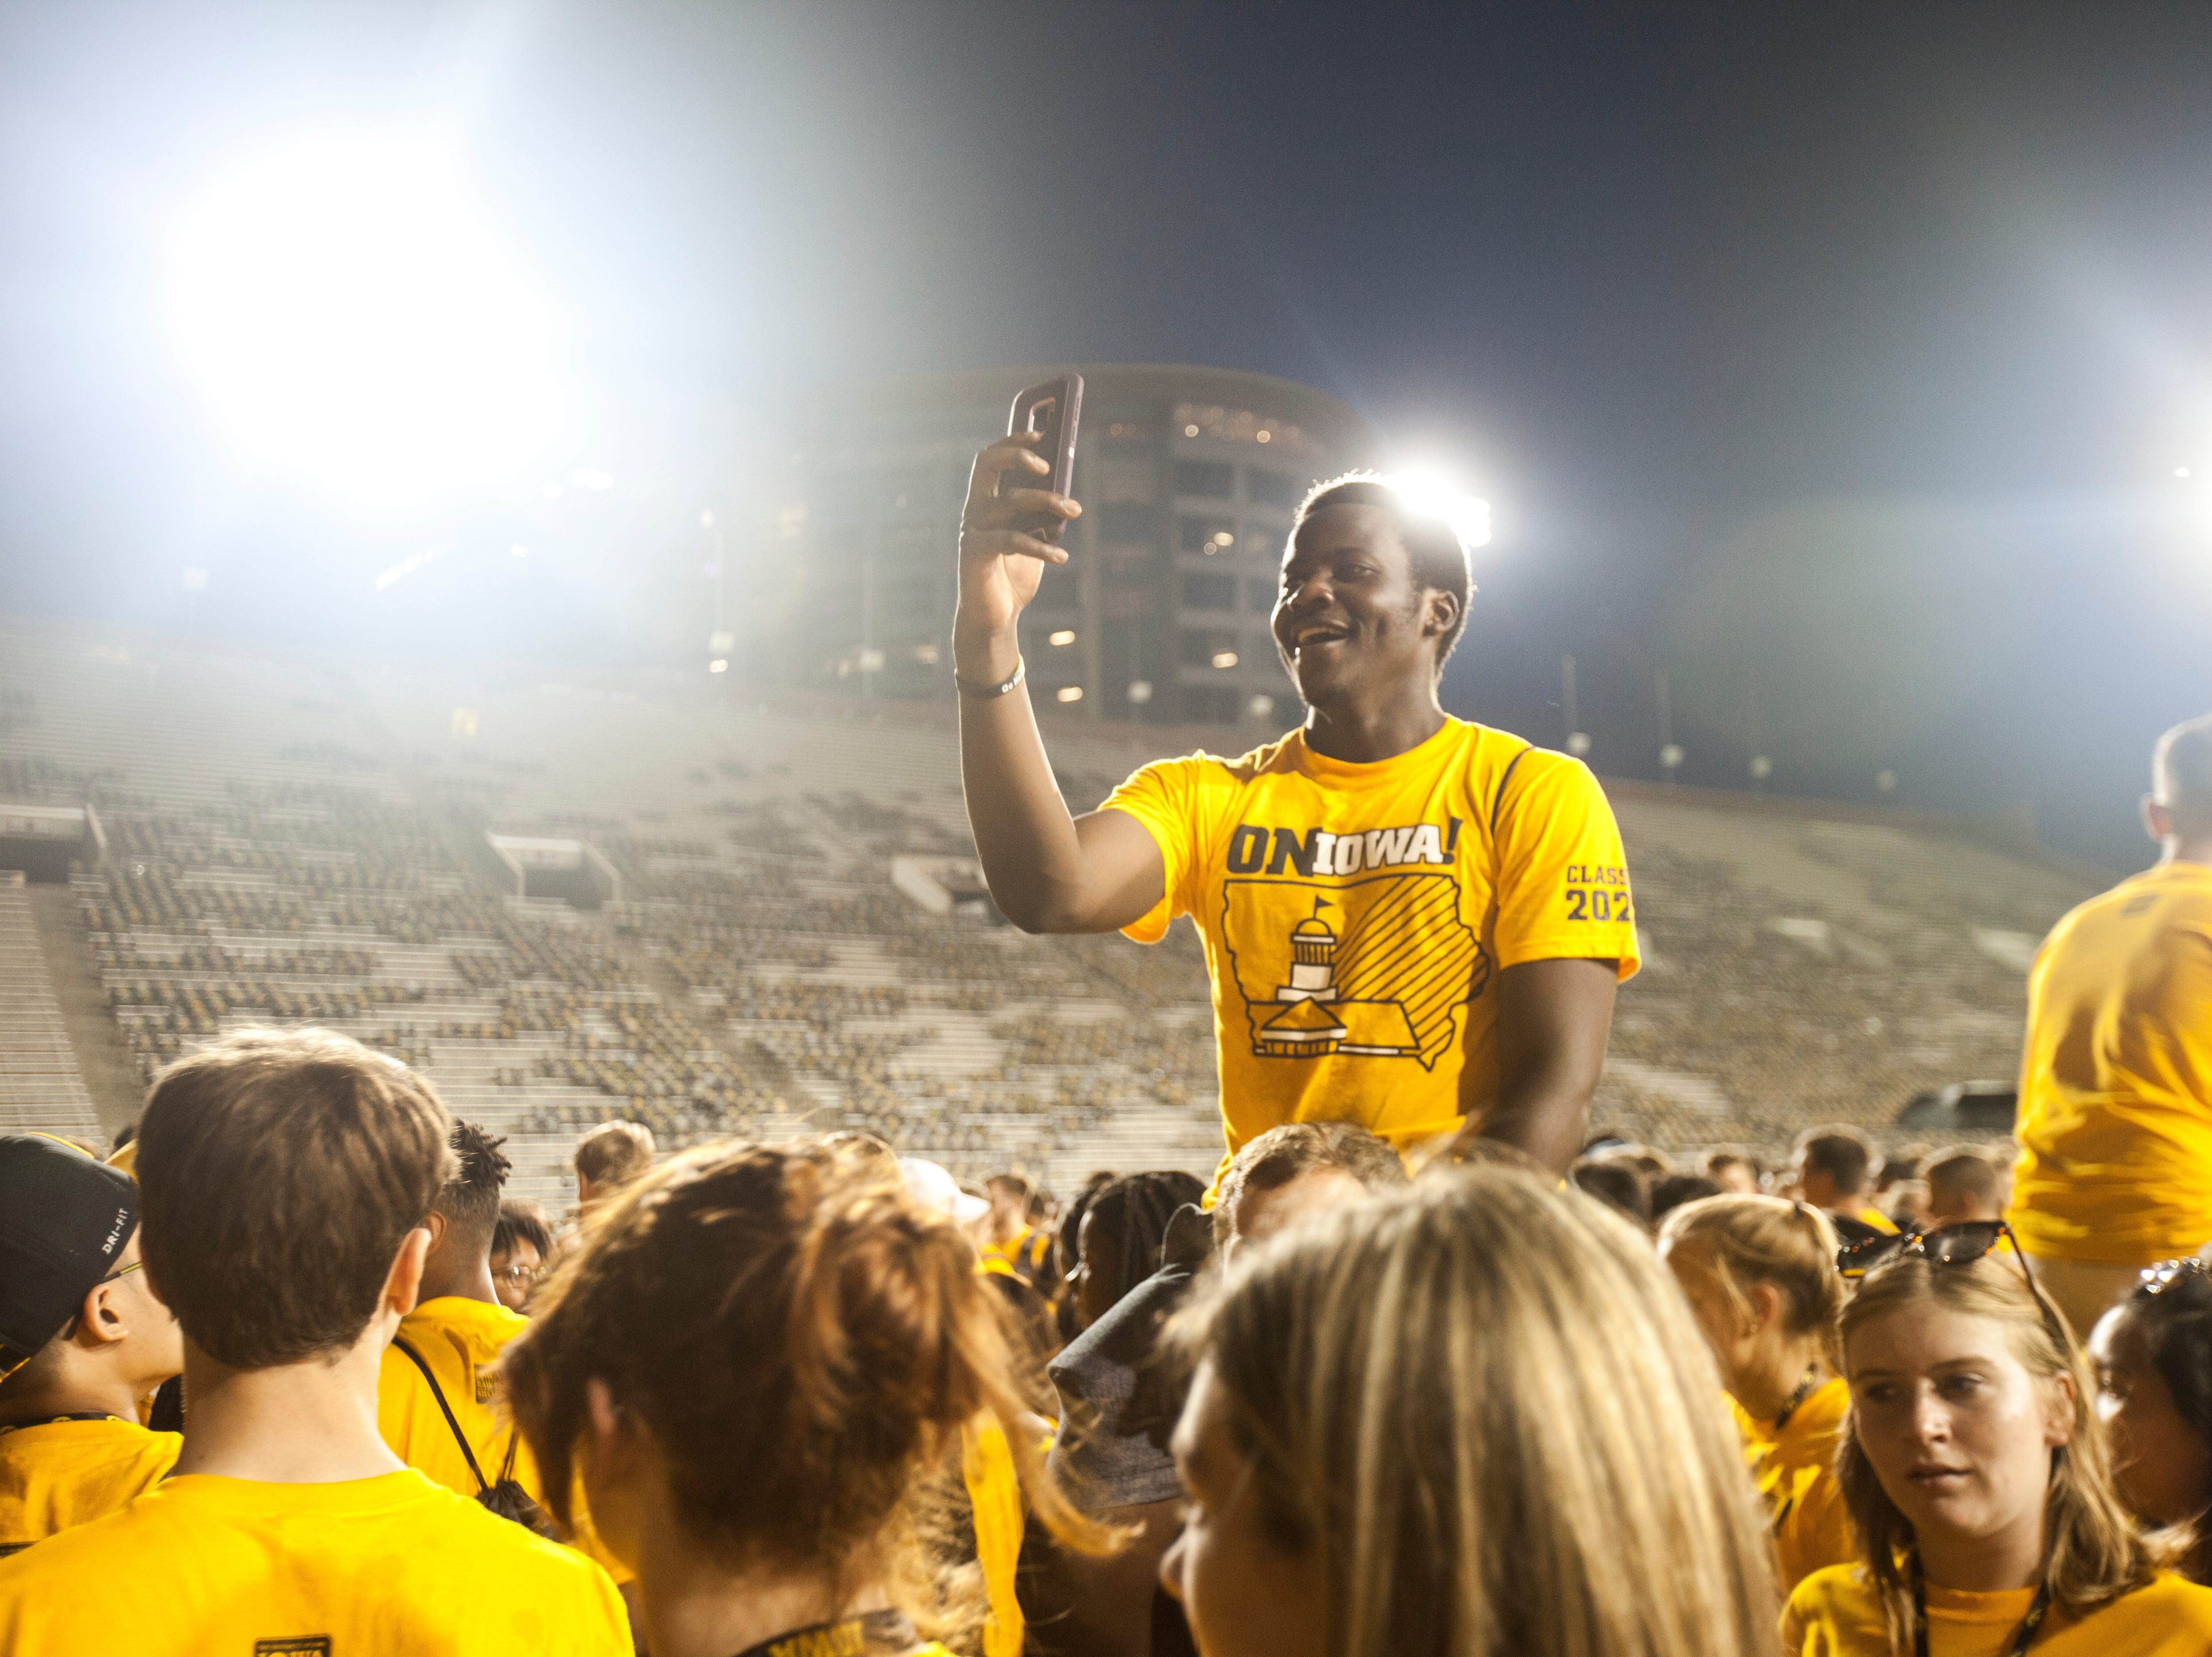 "Joseph Bentley, of Waterloo, Iowa, carries Elias ""Nami"" Mpundu, of Zambia, Africa, while students gather during an OnIowa event on Friday, Aug. 17, 2018, at Kinnick Stadium in Iowa City. Bentley is studying biology and Mpundu is studying human physiology."